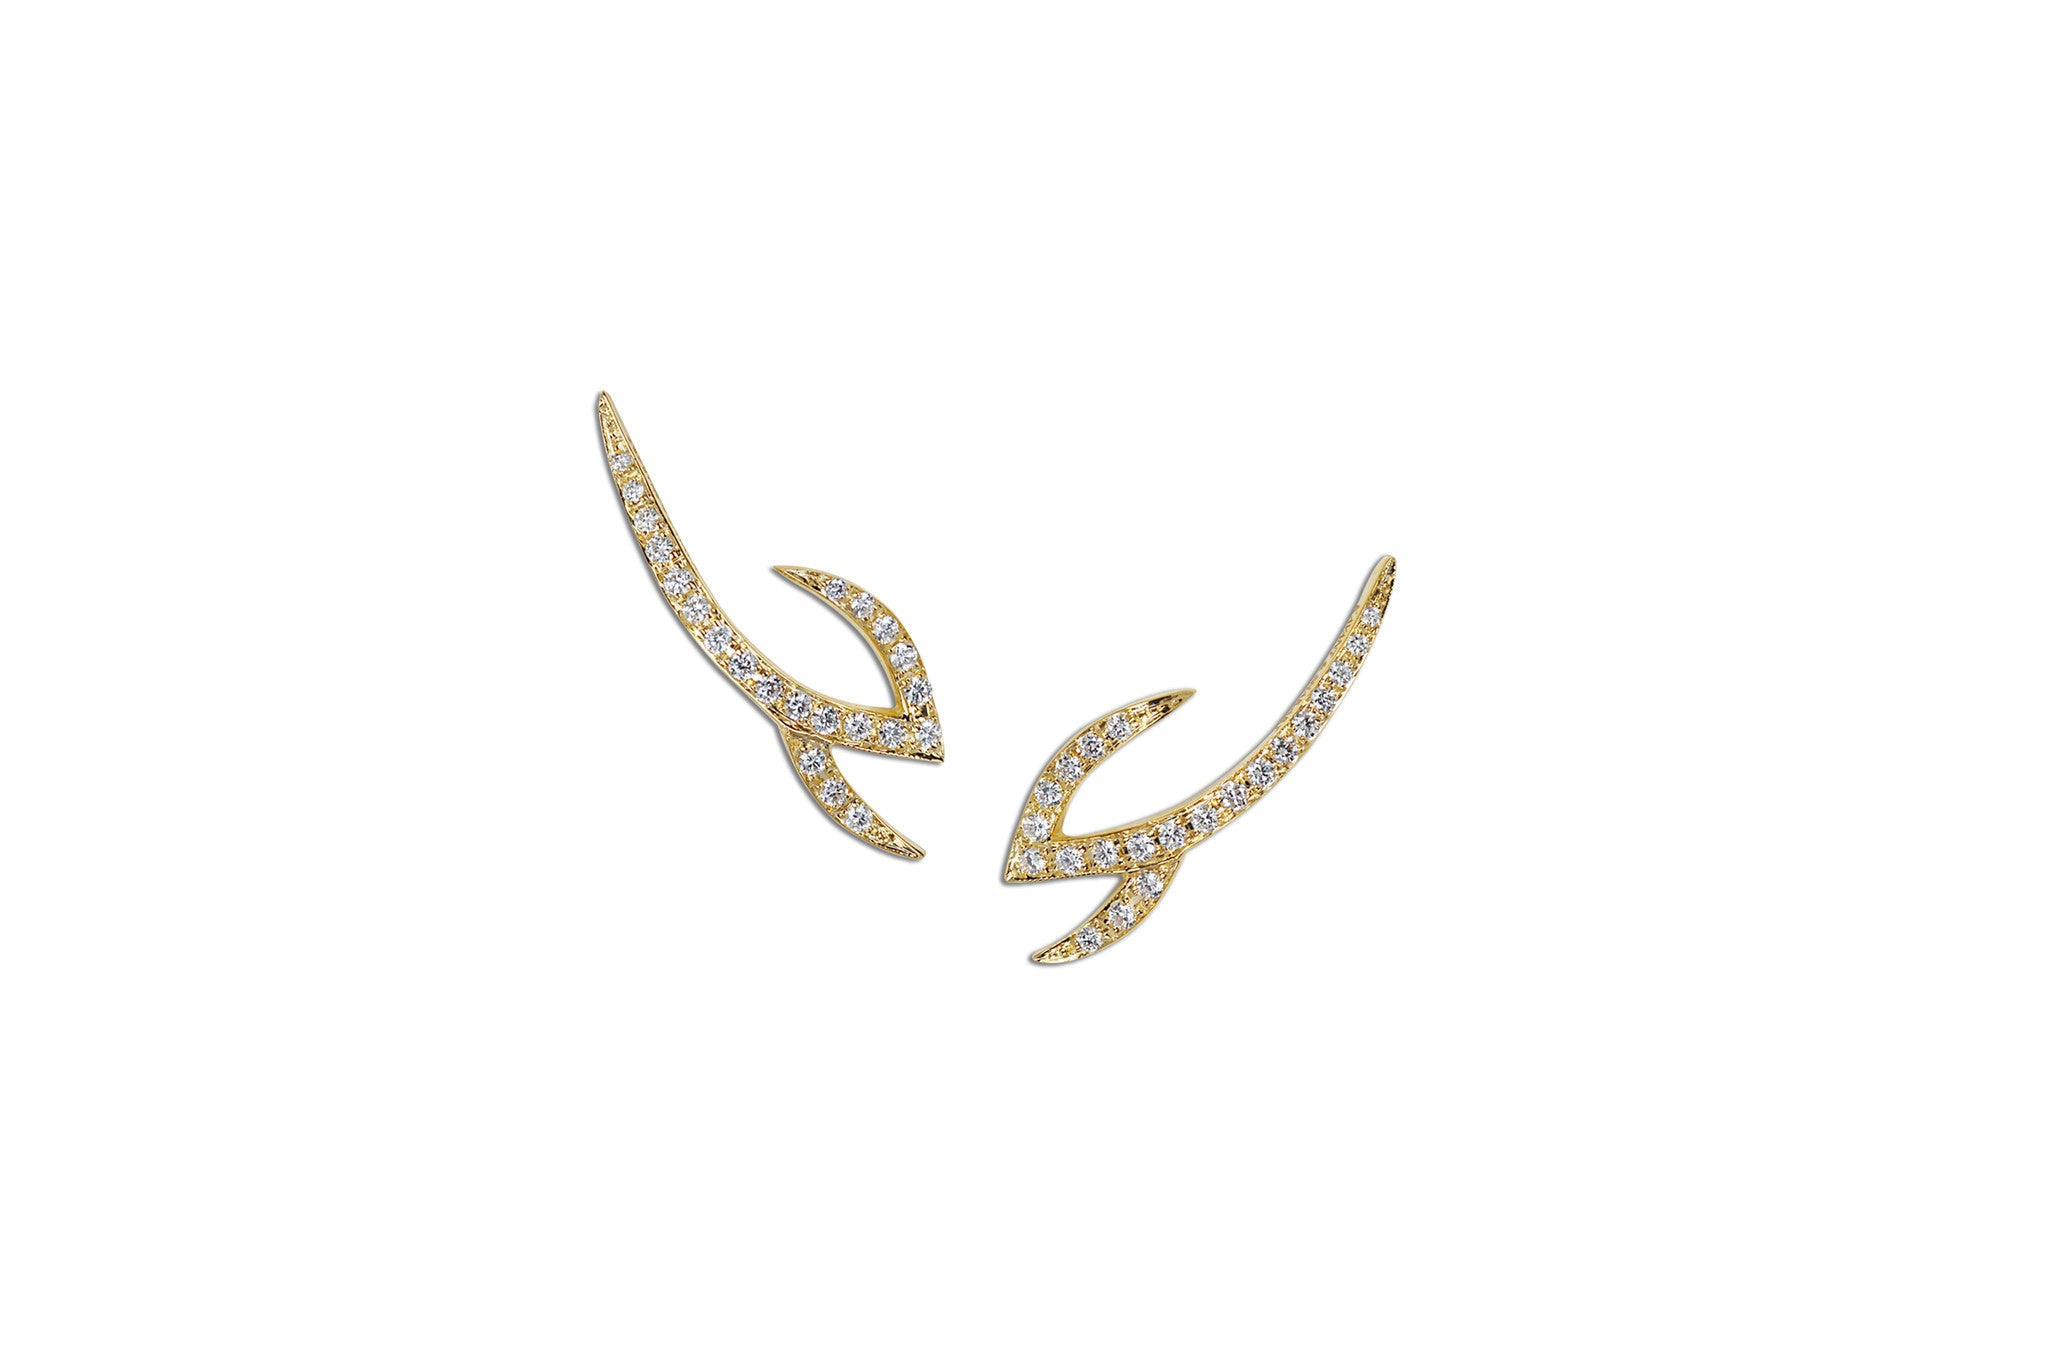 Le Phoenix Claw Diamond Earrings